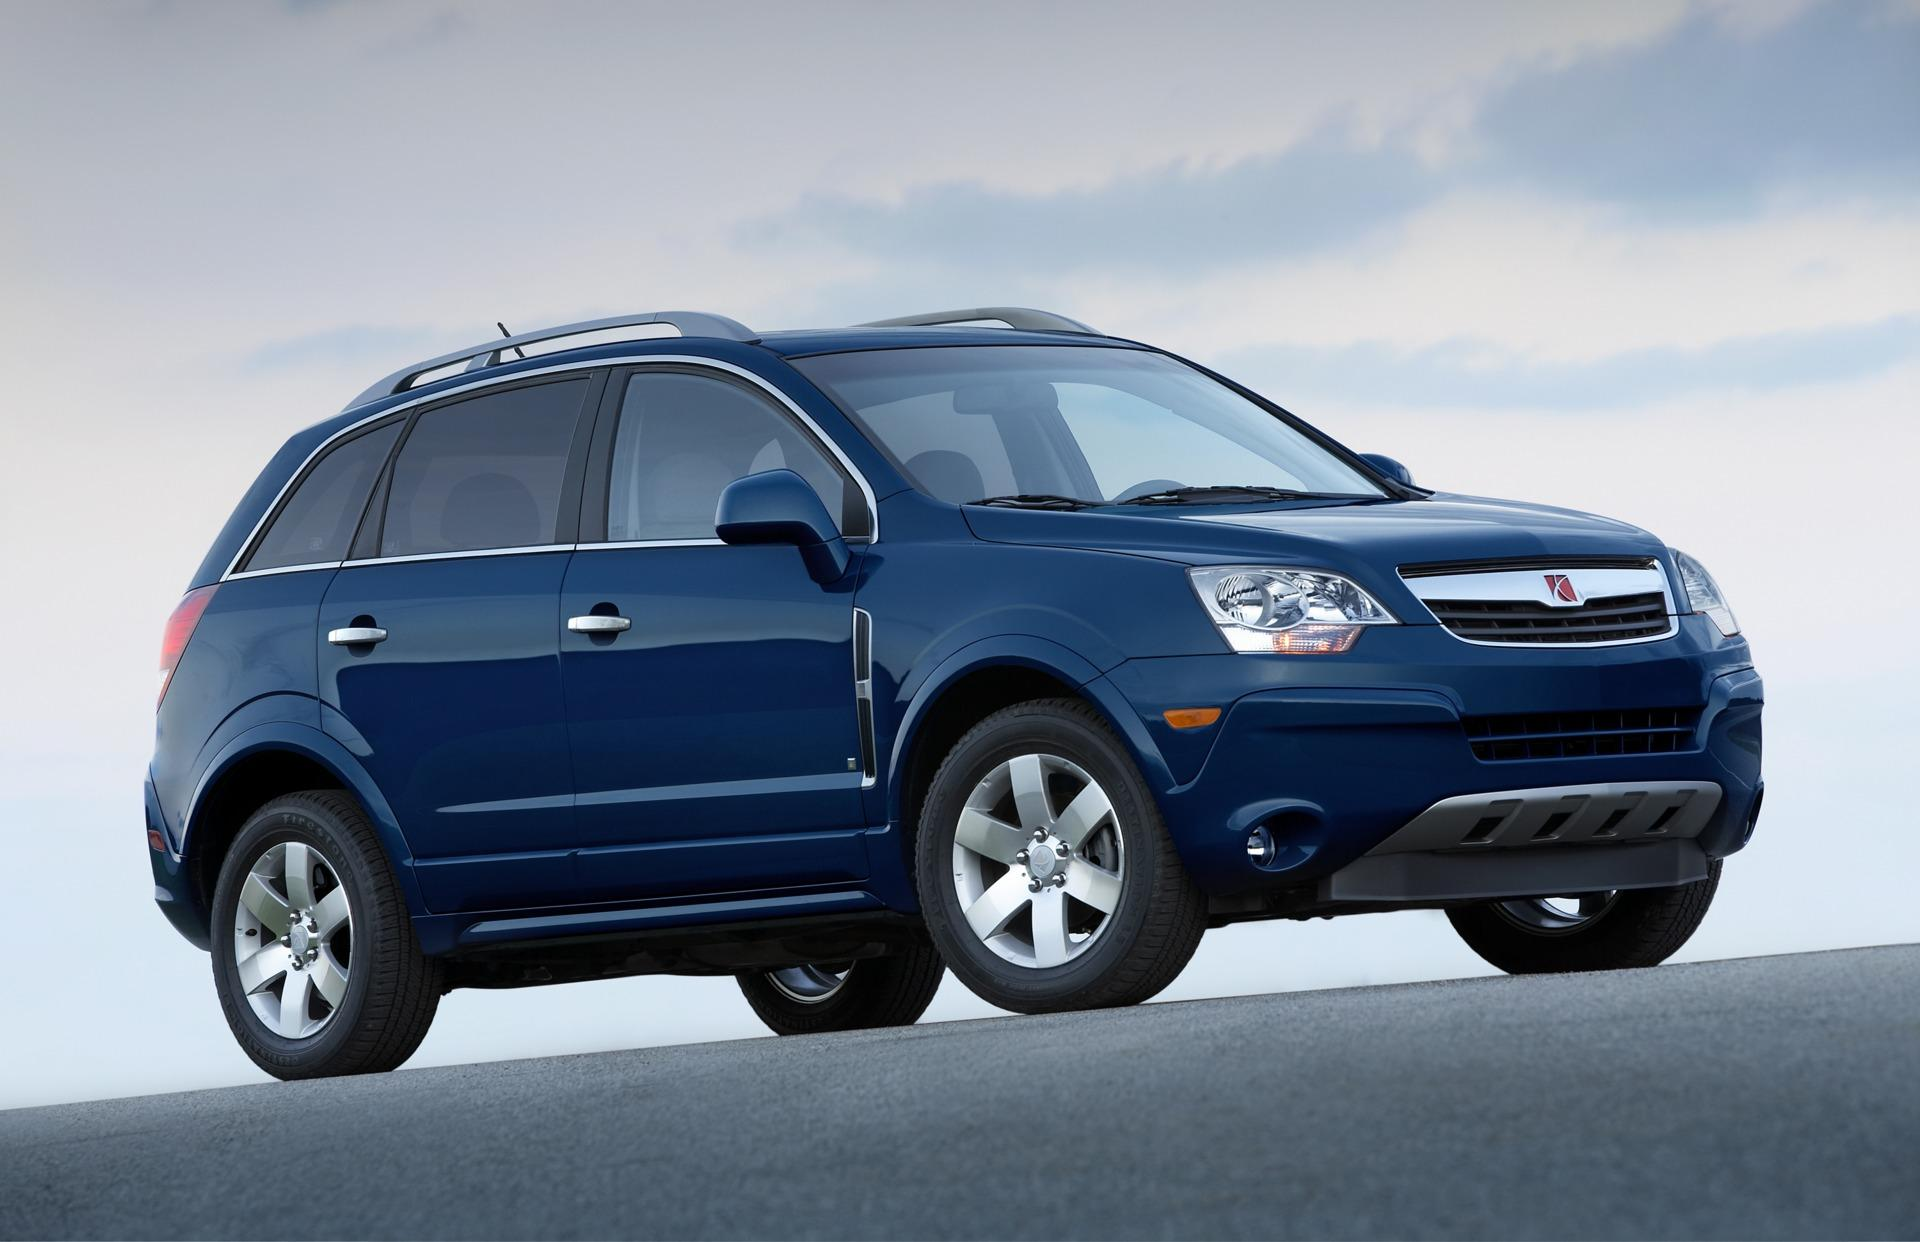 saturn vue 2009 2008 cars suv hybrid conceptcarz cargurus user front vehicle body partsopen wallpapers mode pic information